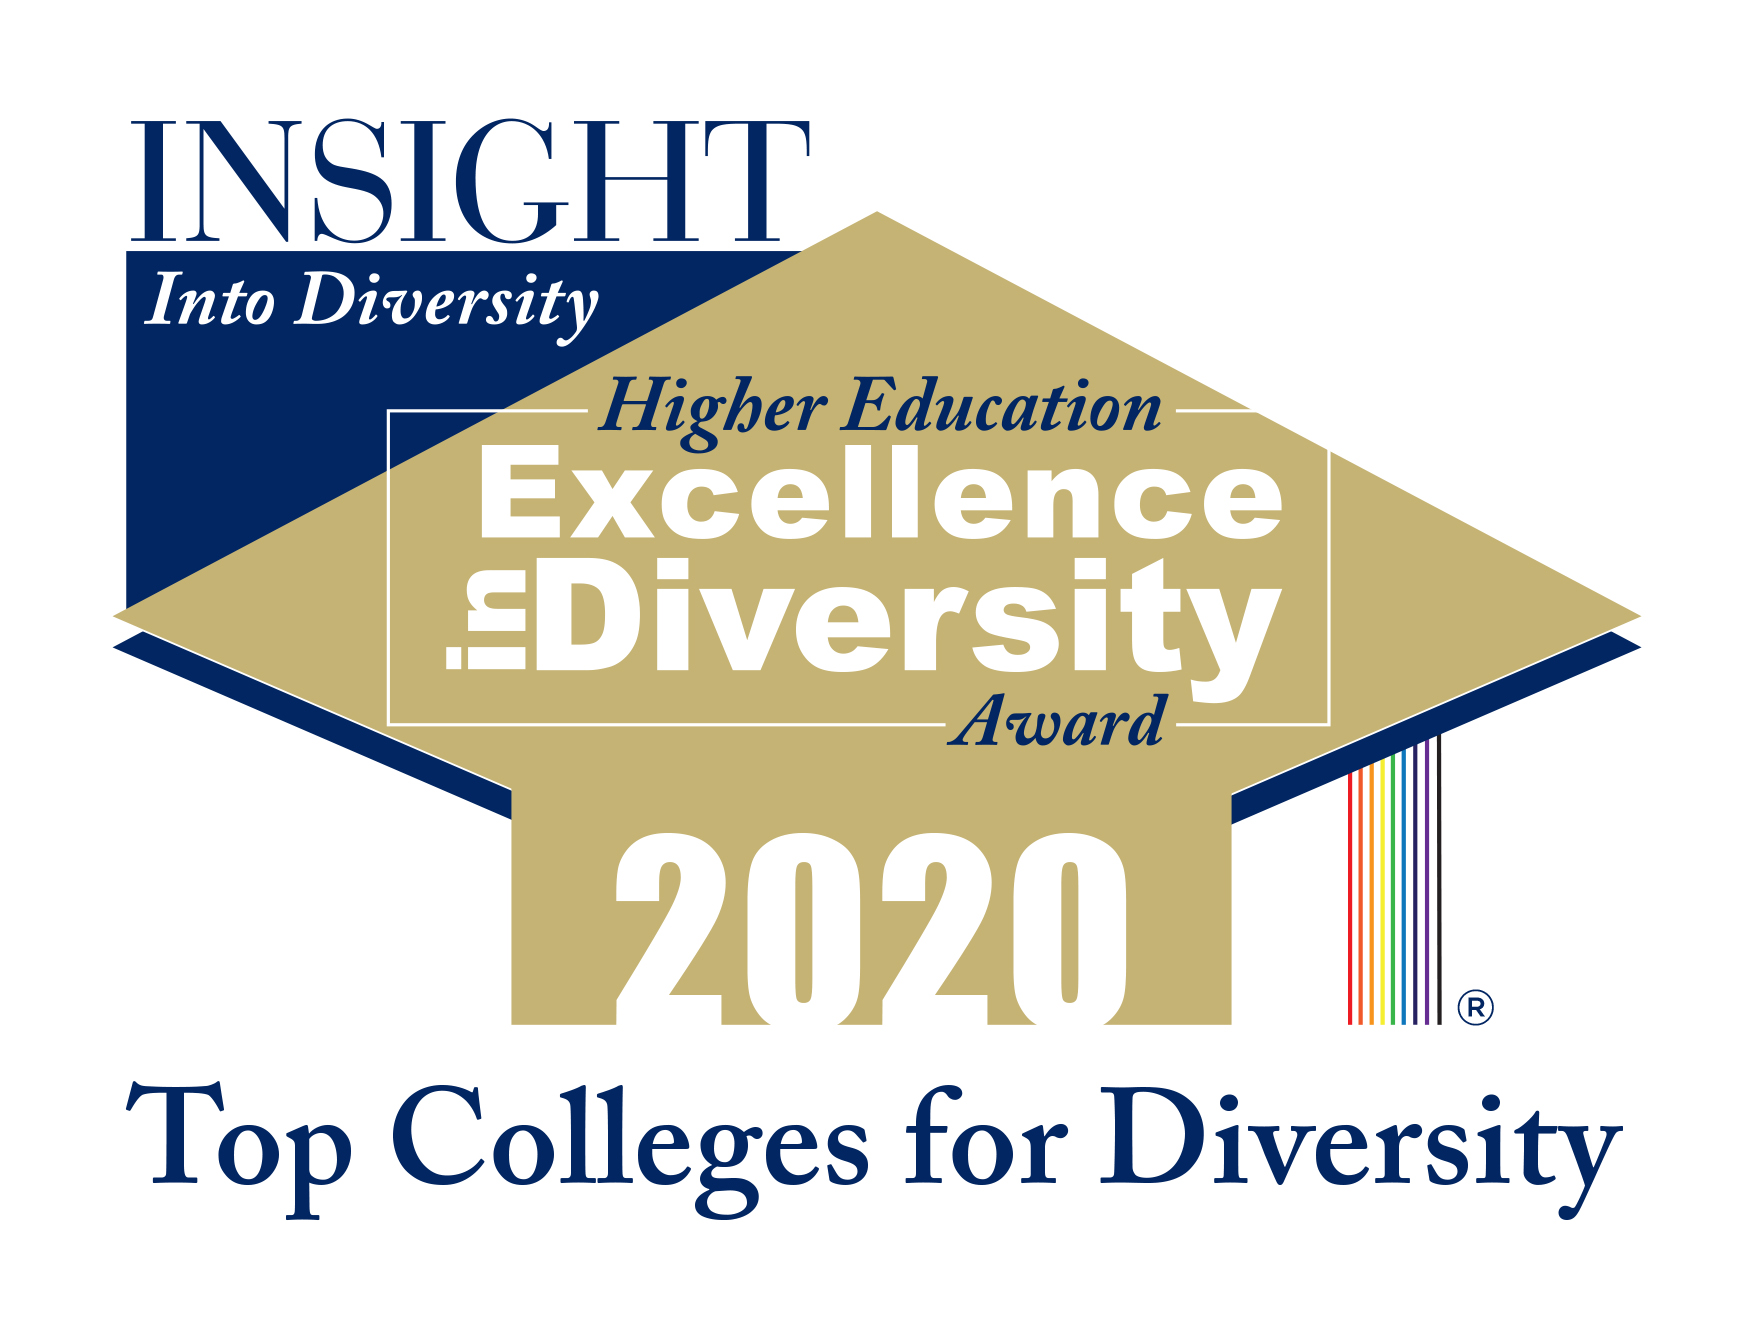 Higher Education Excellence in Diversity 2020 Award